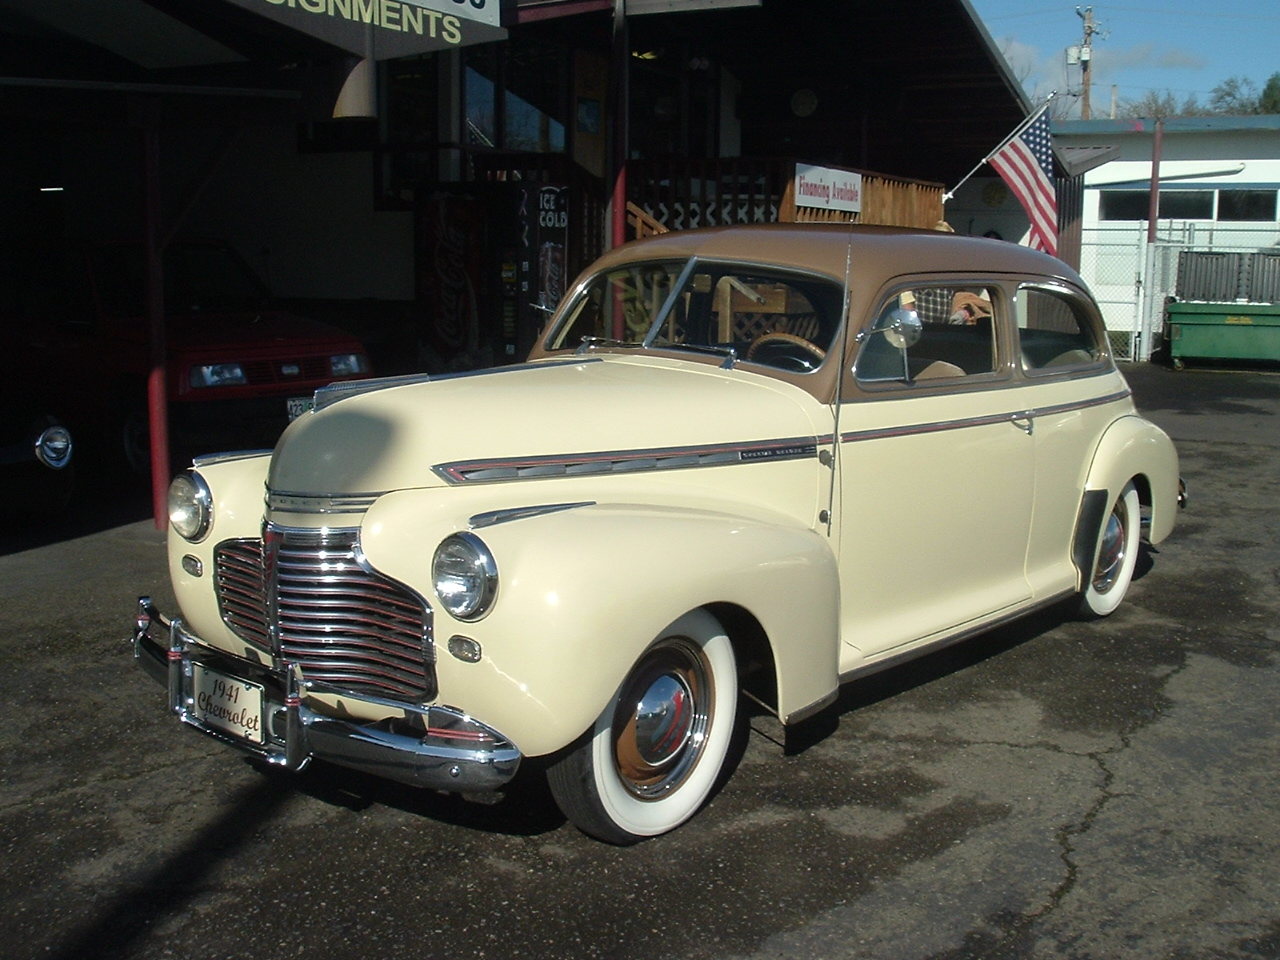 Hamilton Auto Sales 1941 Plymouth Pro Street Chevy 2dr Sedan Original 216 6cyl 3spd Transmission Miles Read 56284 And After Looking Car Over I Would Guess They Are But Have No Proof